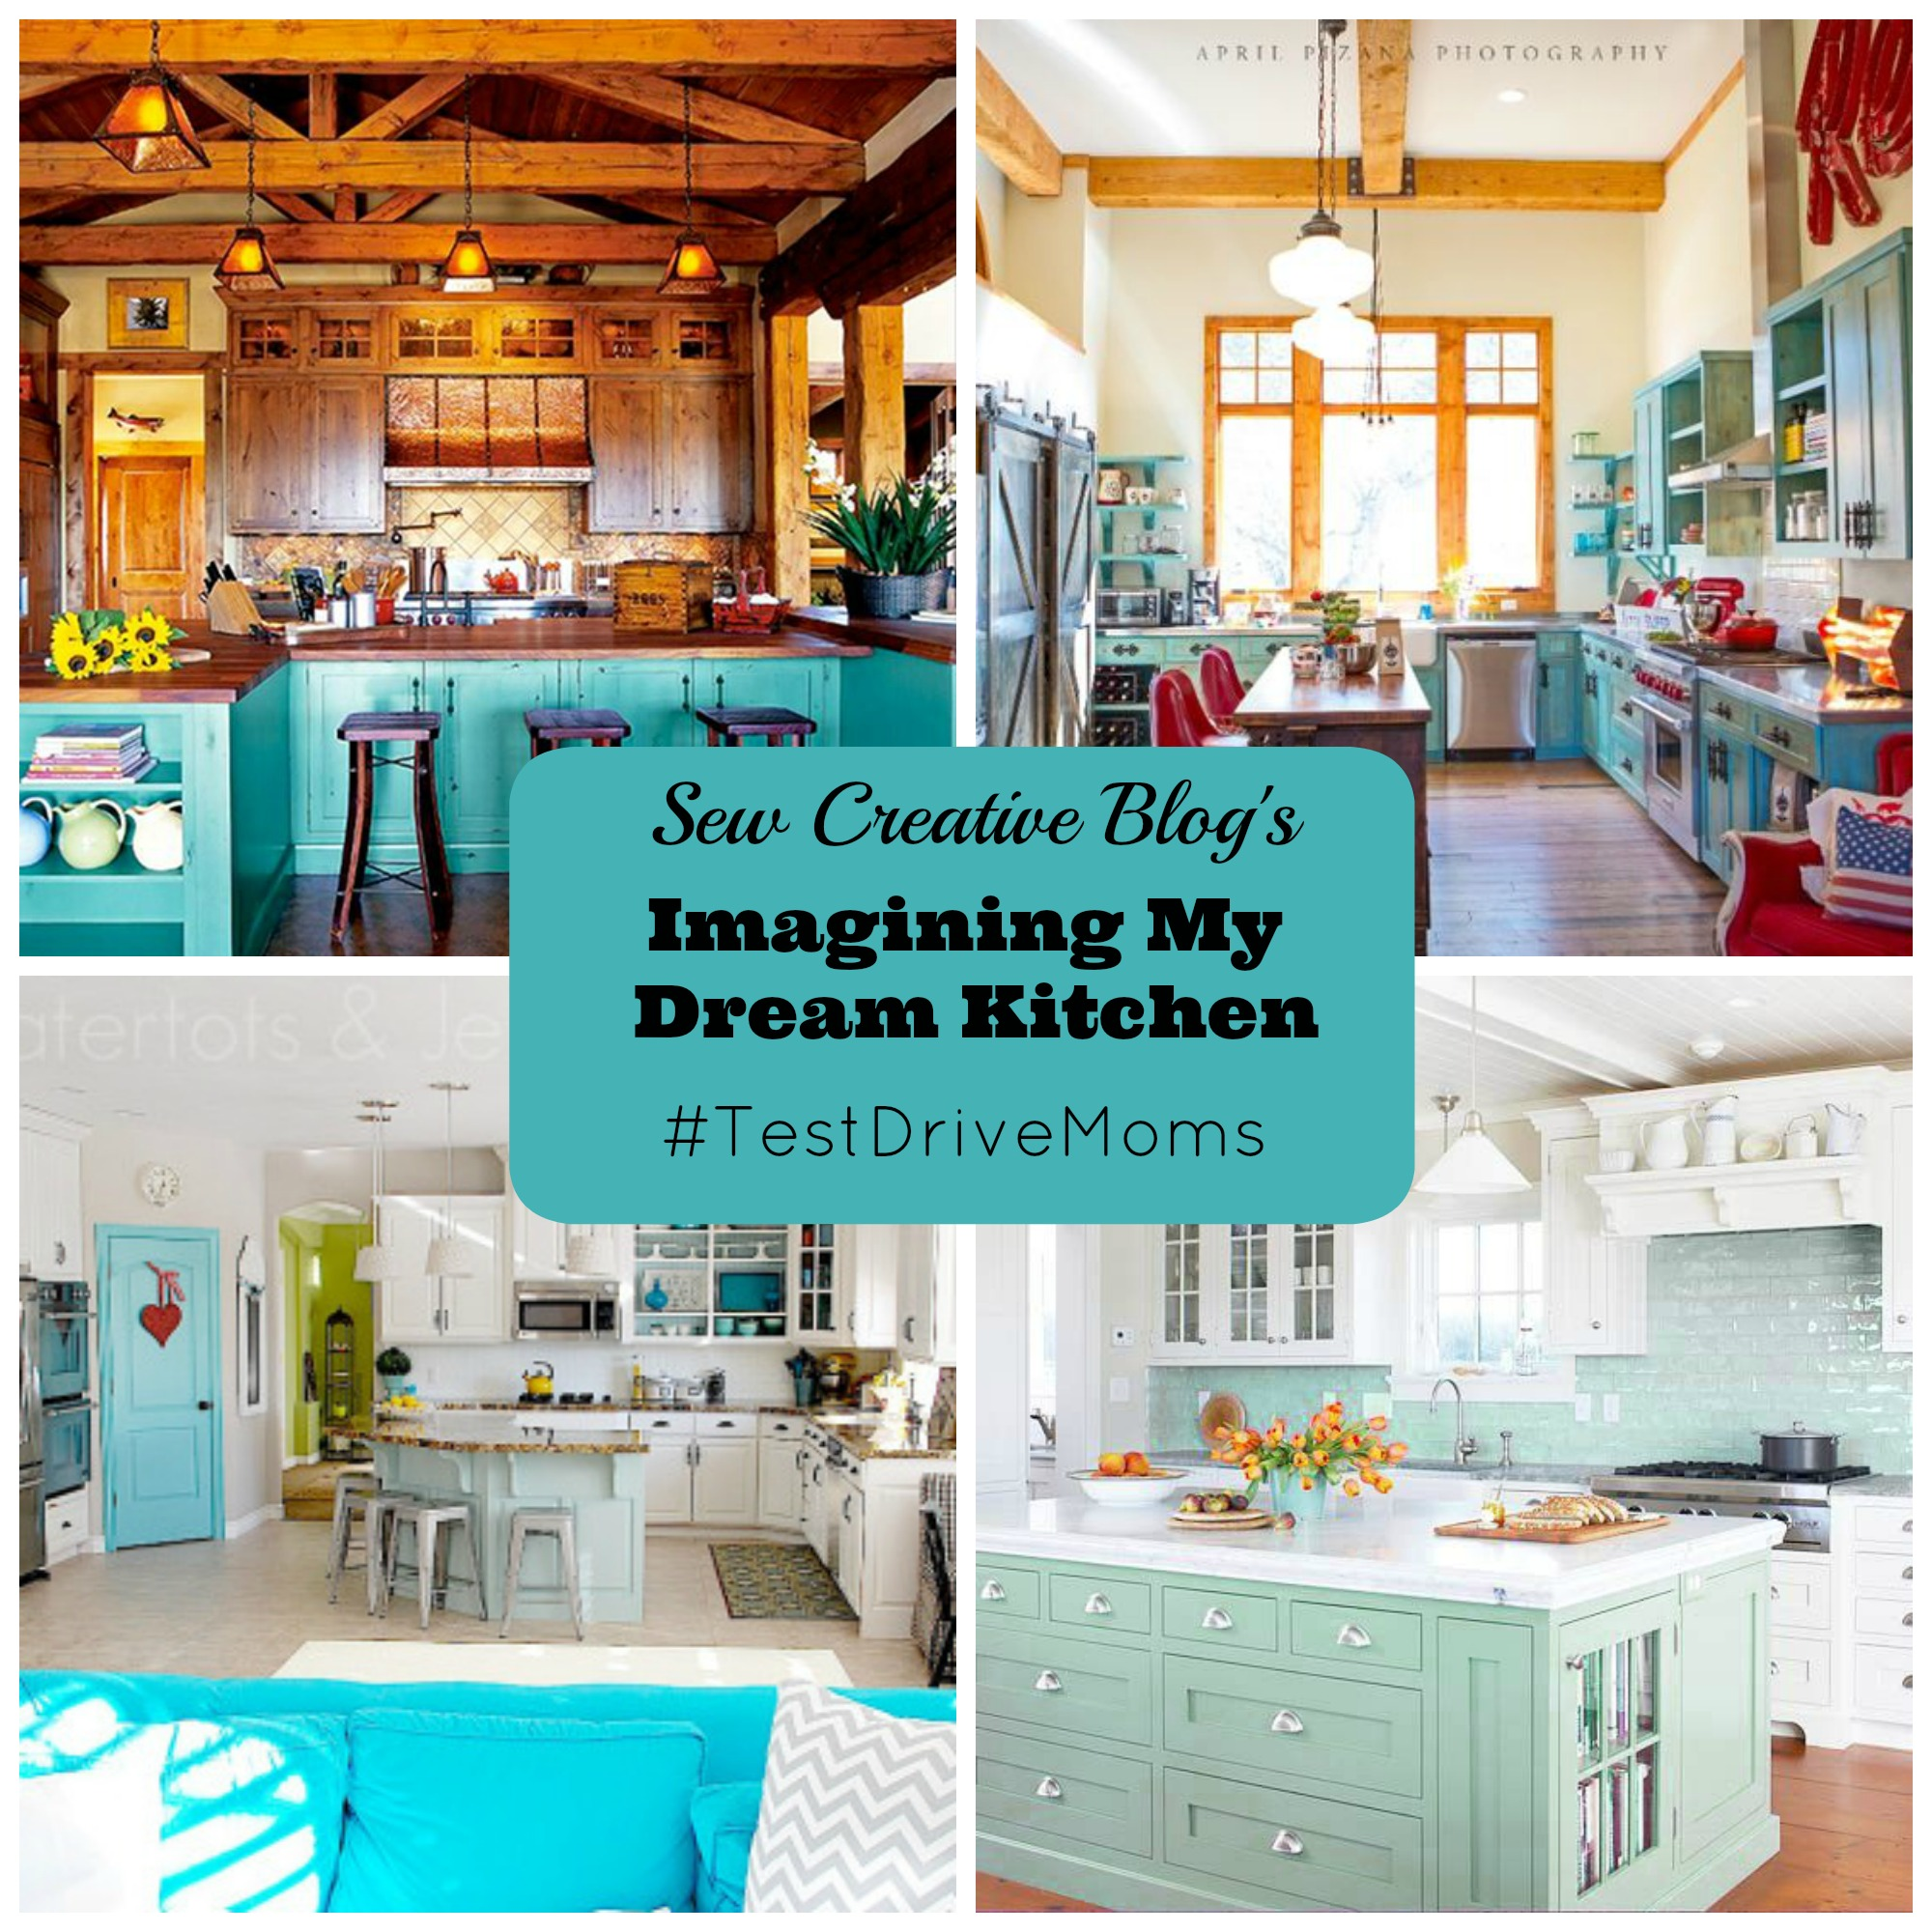 Sew Creative Blog S Imaging My Dream Kitchen Beautiful Aqua Blue Kitchens And Appliances To Fill Them